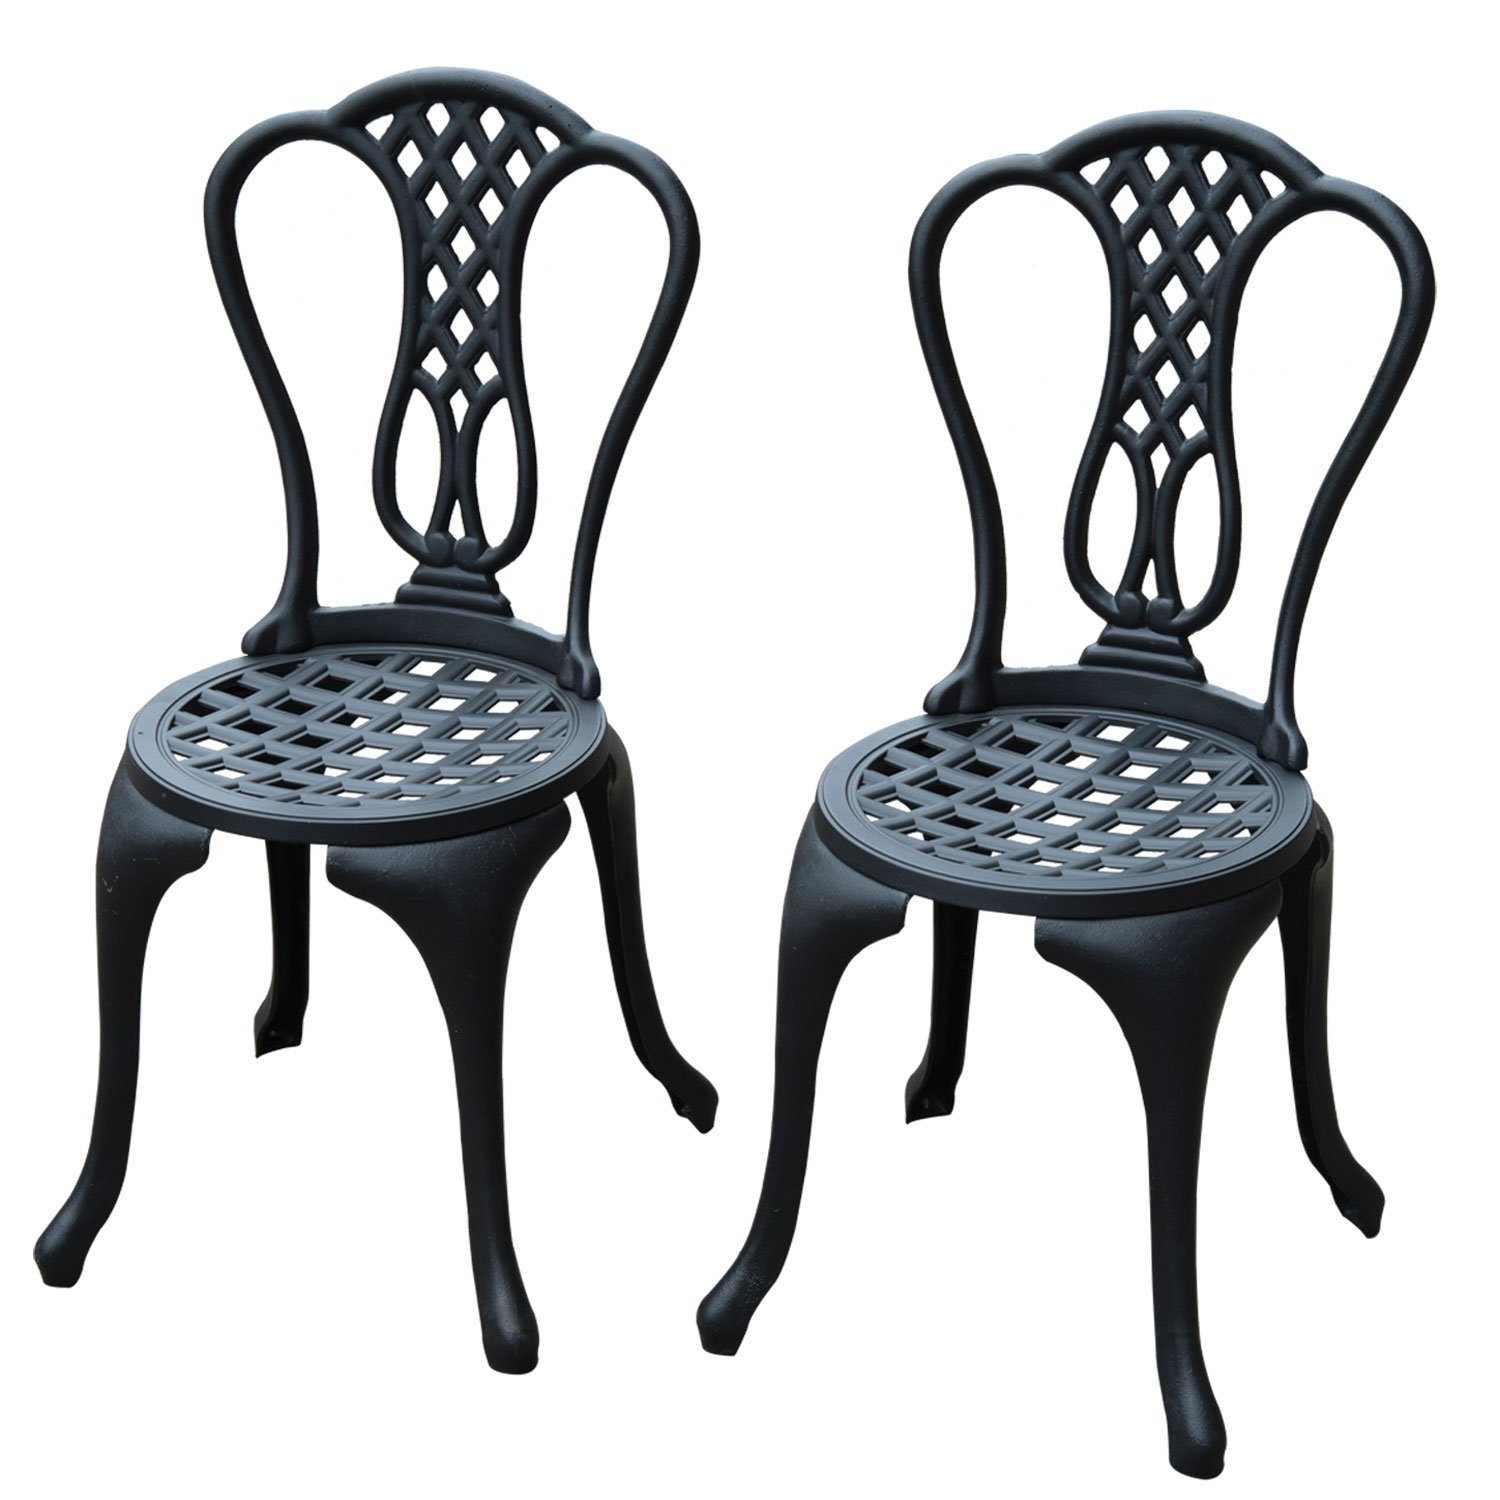 homcom 3 piece patio cast aluminium bistro set garden outdoor furniture table and chairs shabby chic style amazoncouk garden outdoors - Garden Furniture 2014 Uk